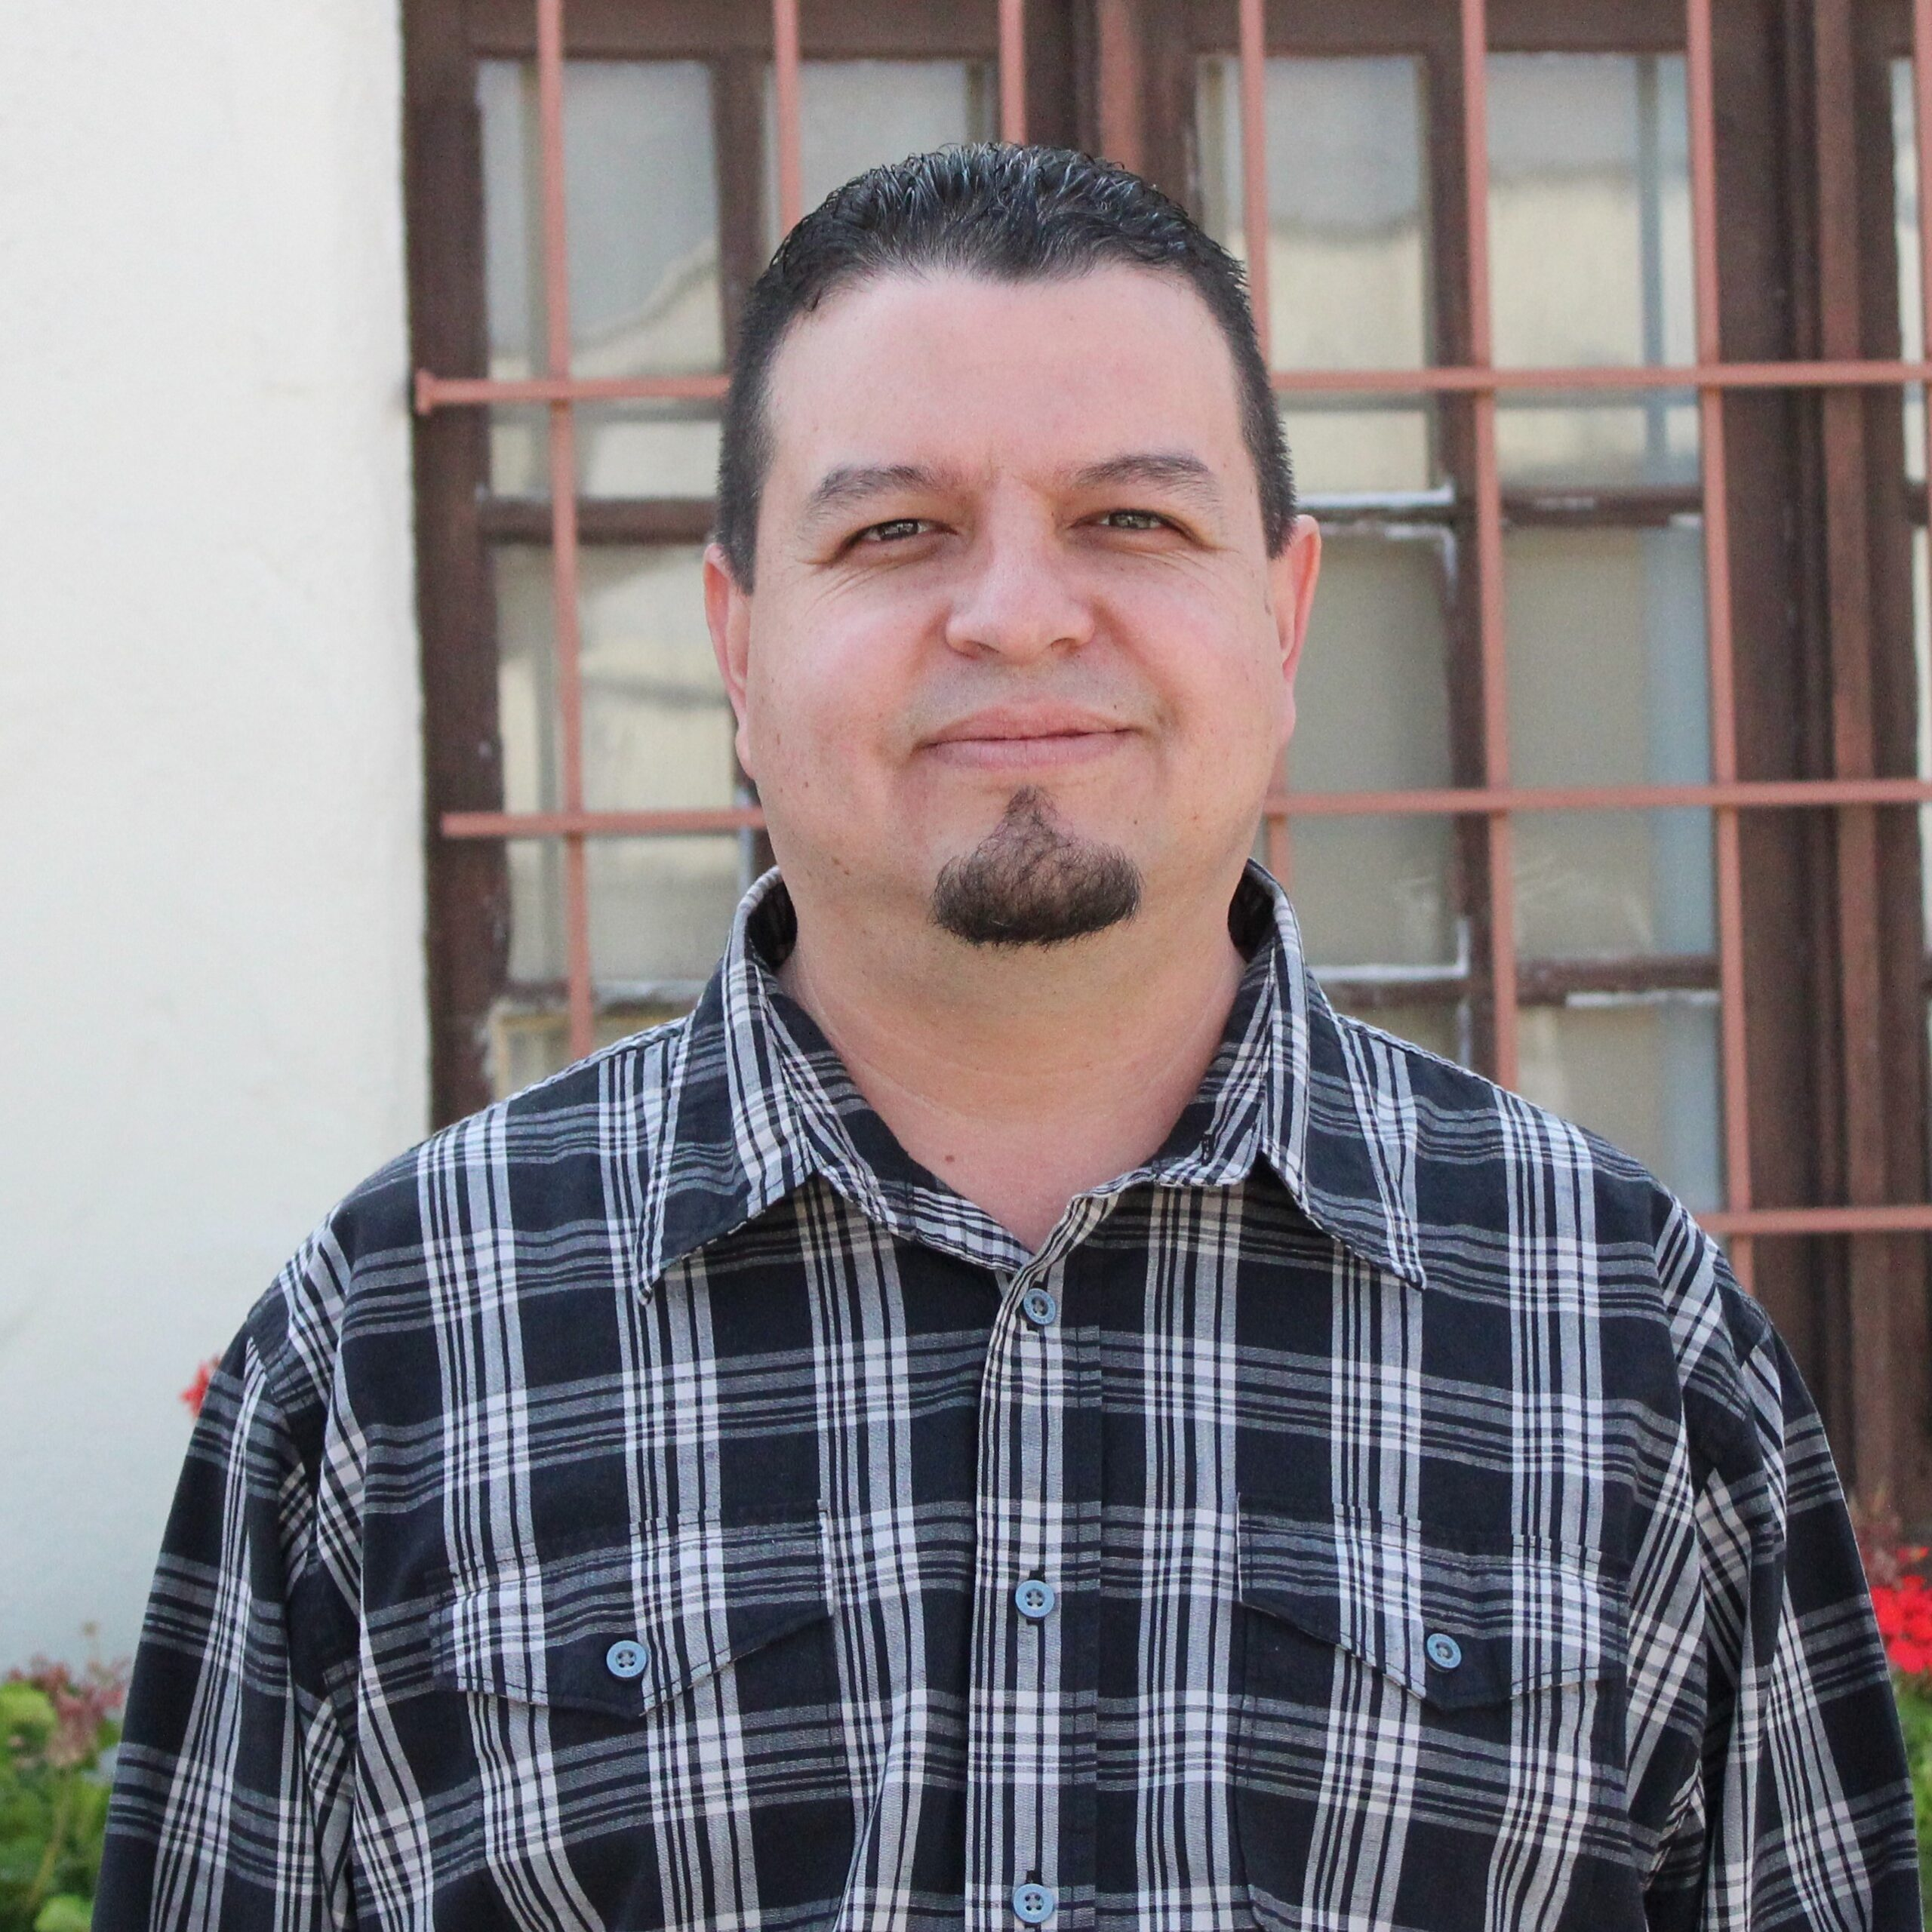 Miguel Zaragoza, Quality Manager at Newton Heat Treating Co., Inc.